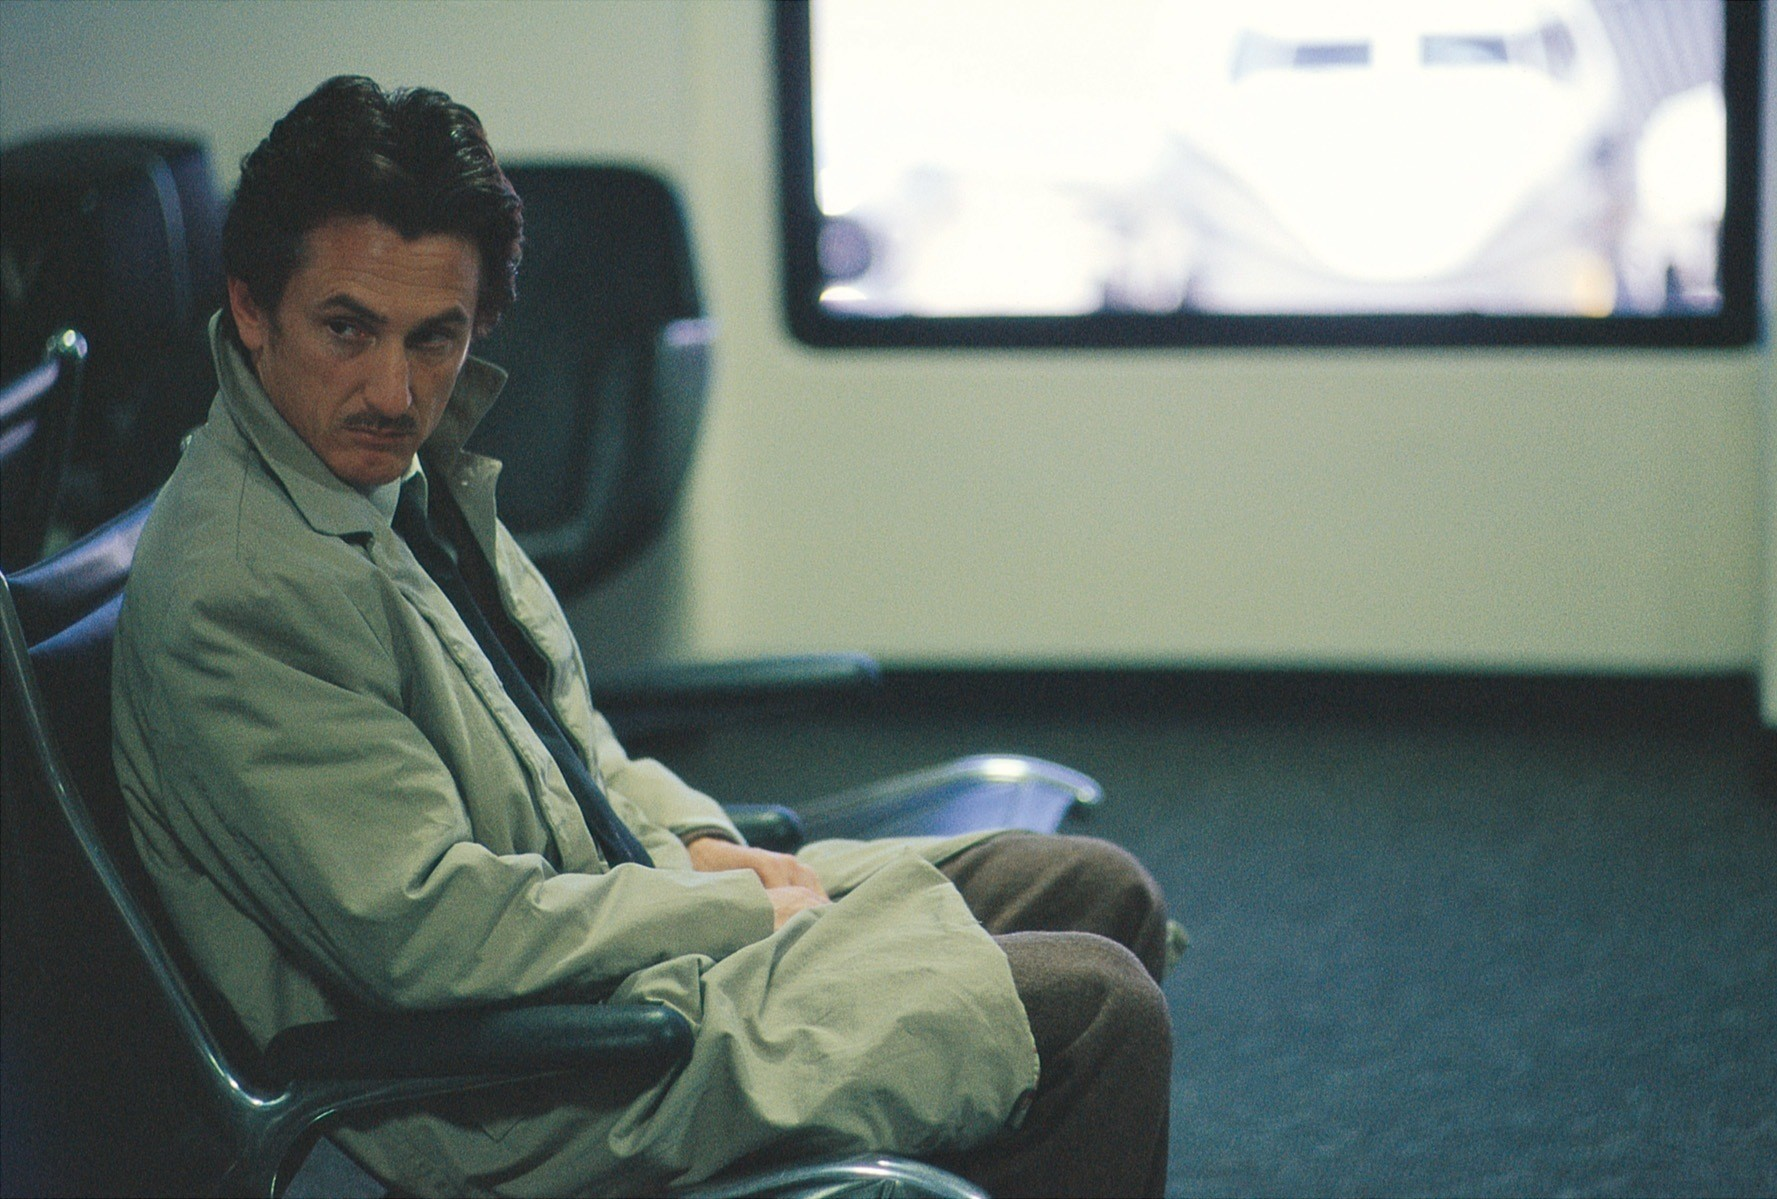 Sean Penn as Sam Bicke, an ordinary man frustrated by failures in life in The Assassination of Richard Nixon (2004)